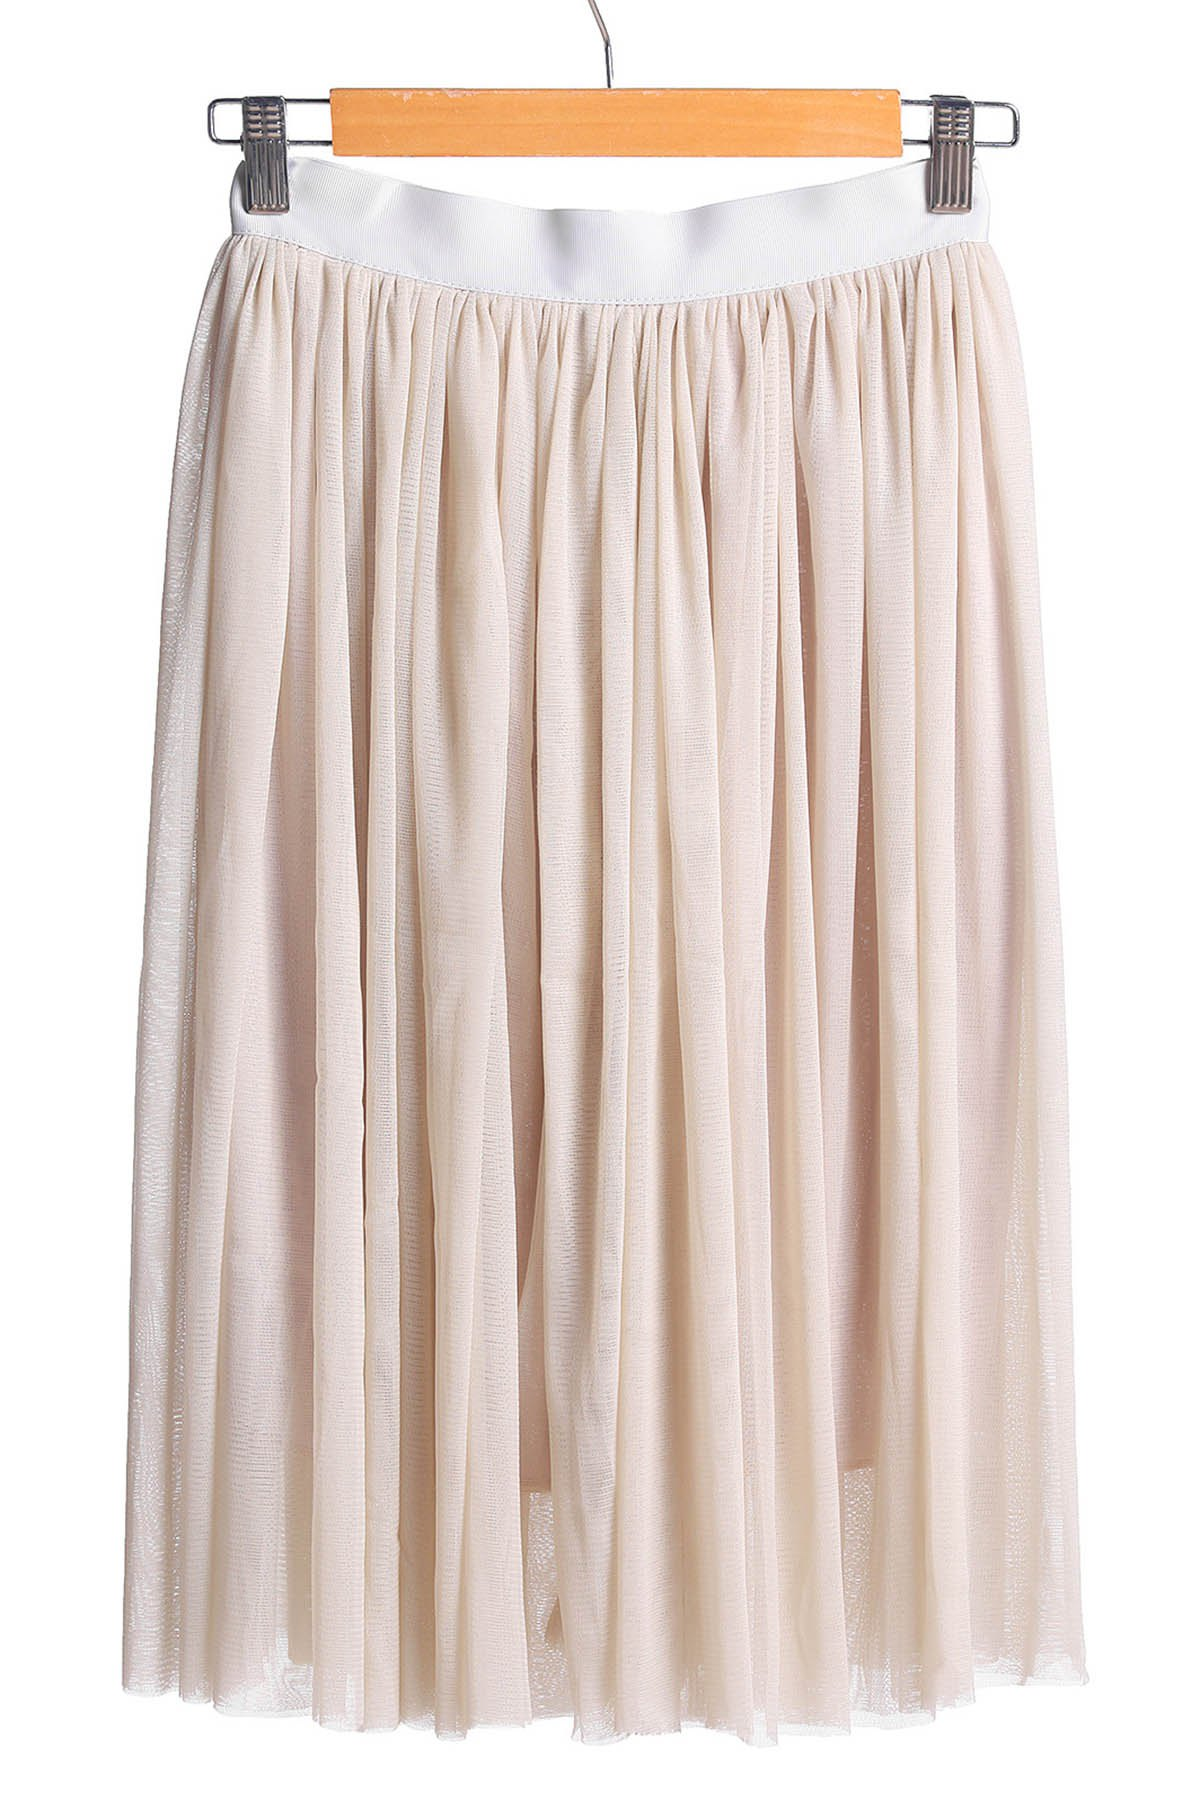 Stylish Elastic Waist Ball Gown Solid Color Voile Women's Skirt - GRAY L